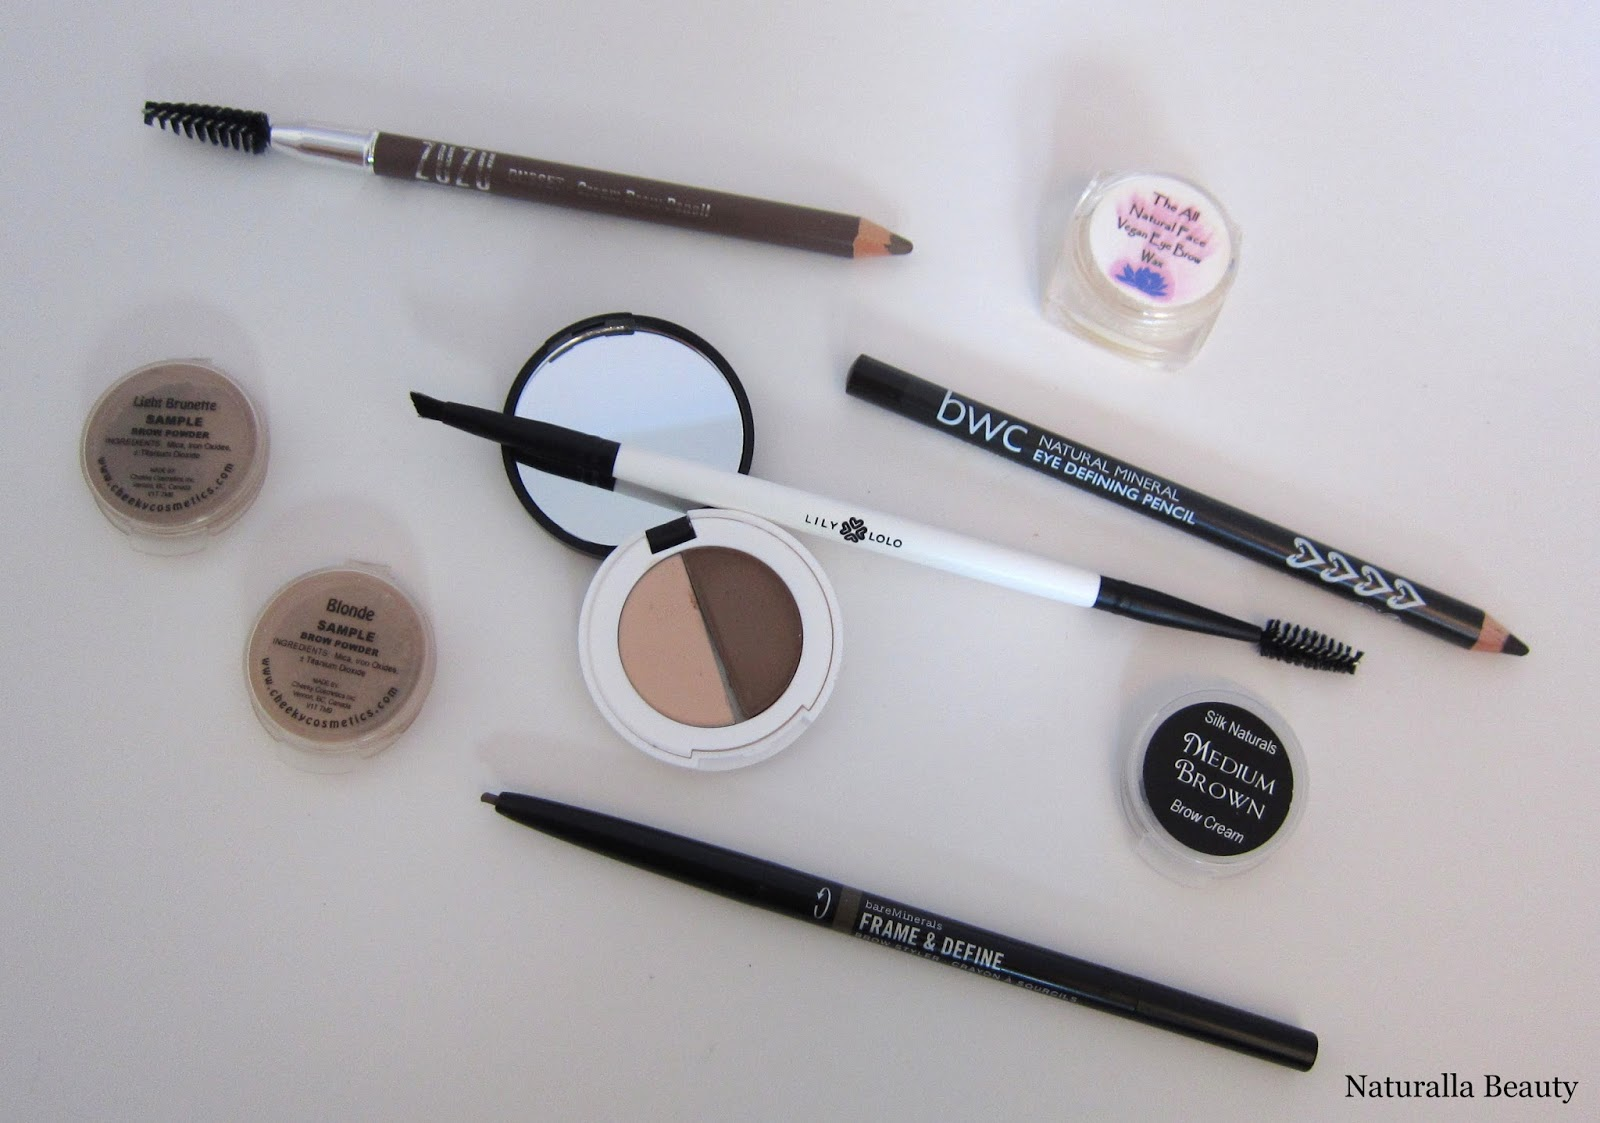 Naturalla Beauty All About Brows Zuzu Luxe Lily Lolo Bare